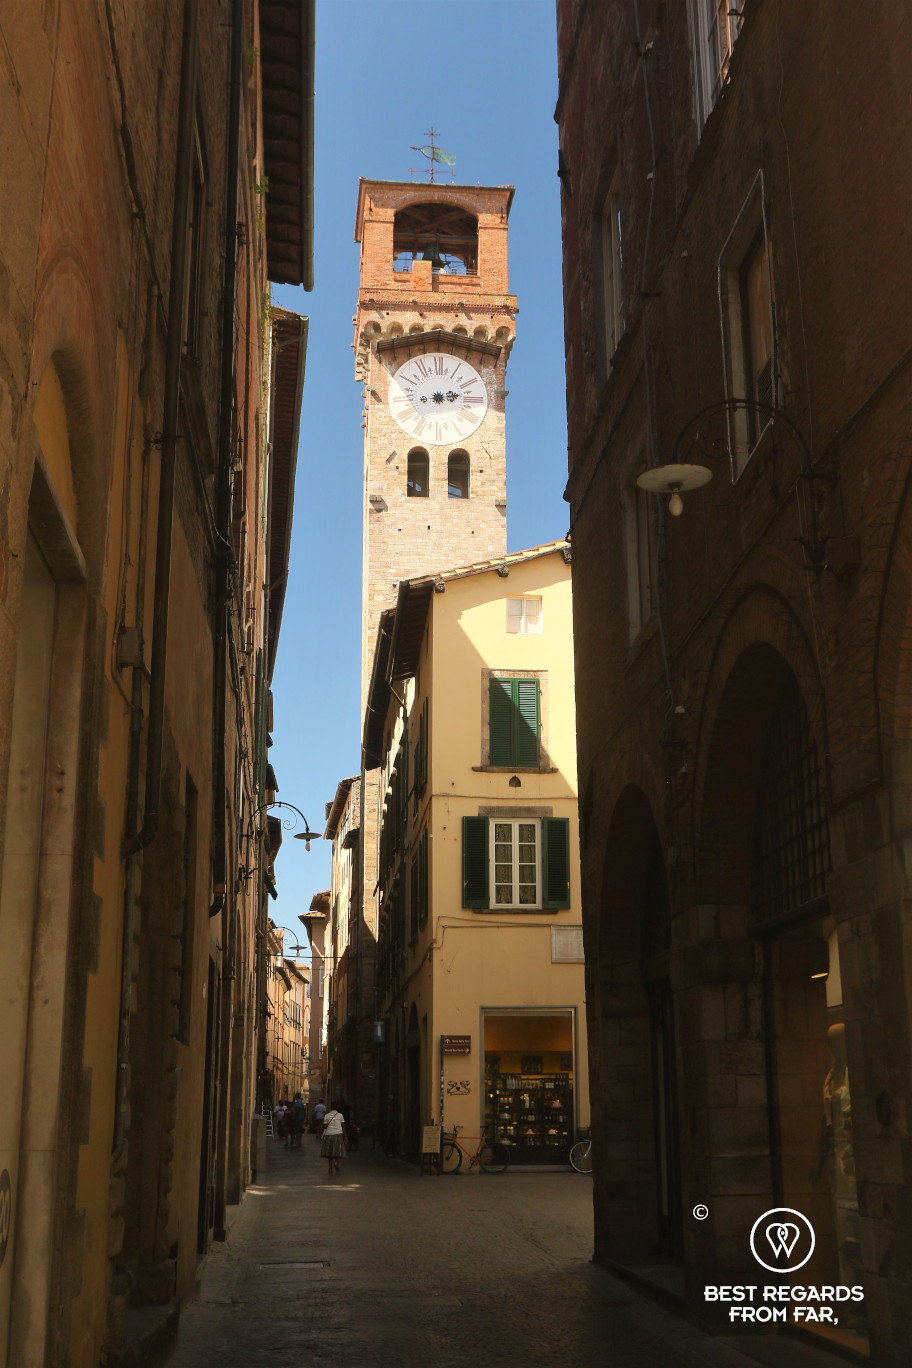 The clock tower of Lucca, Italy